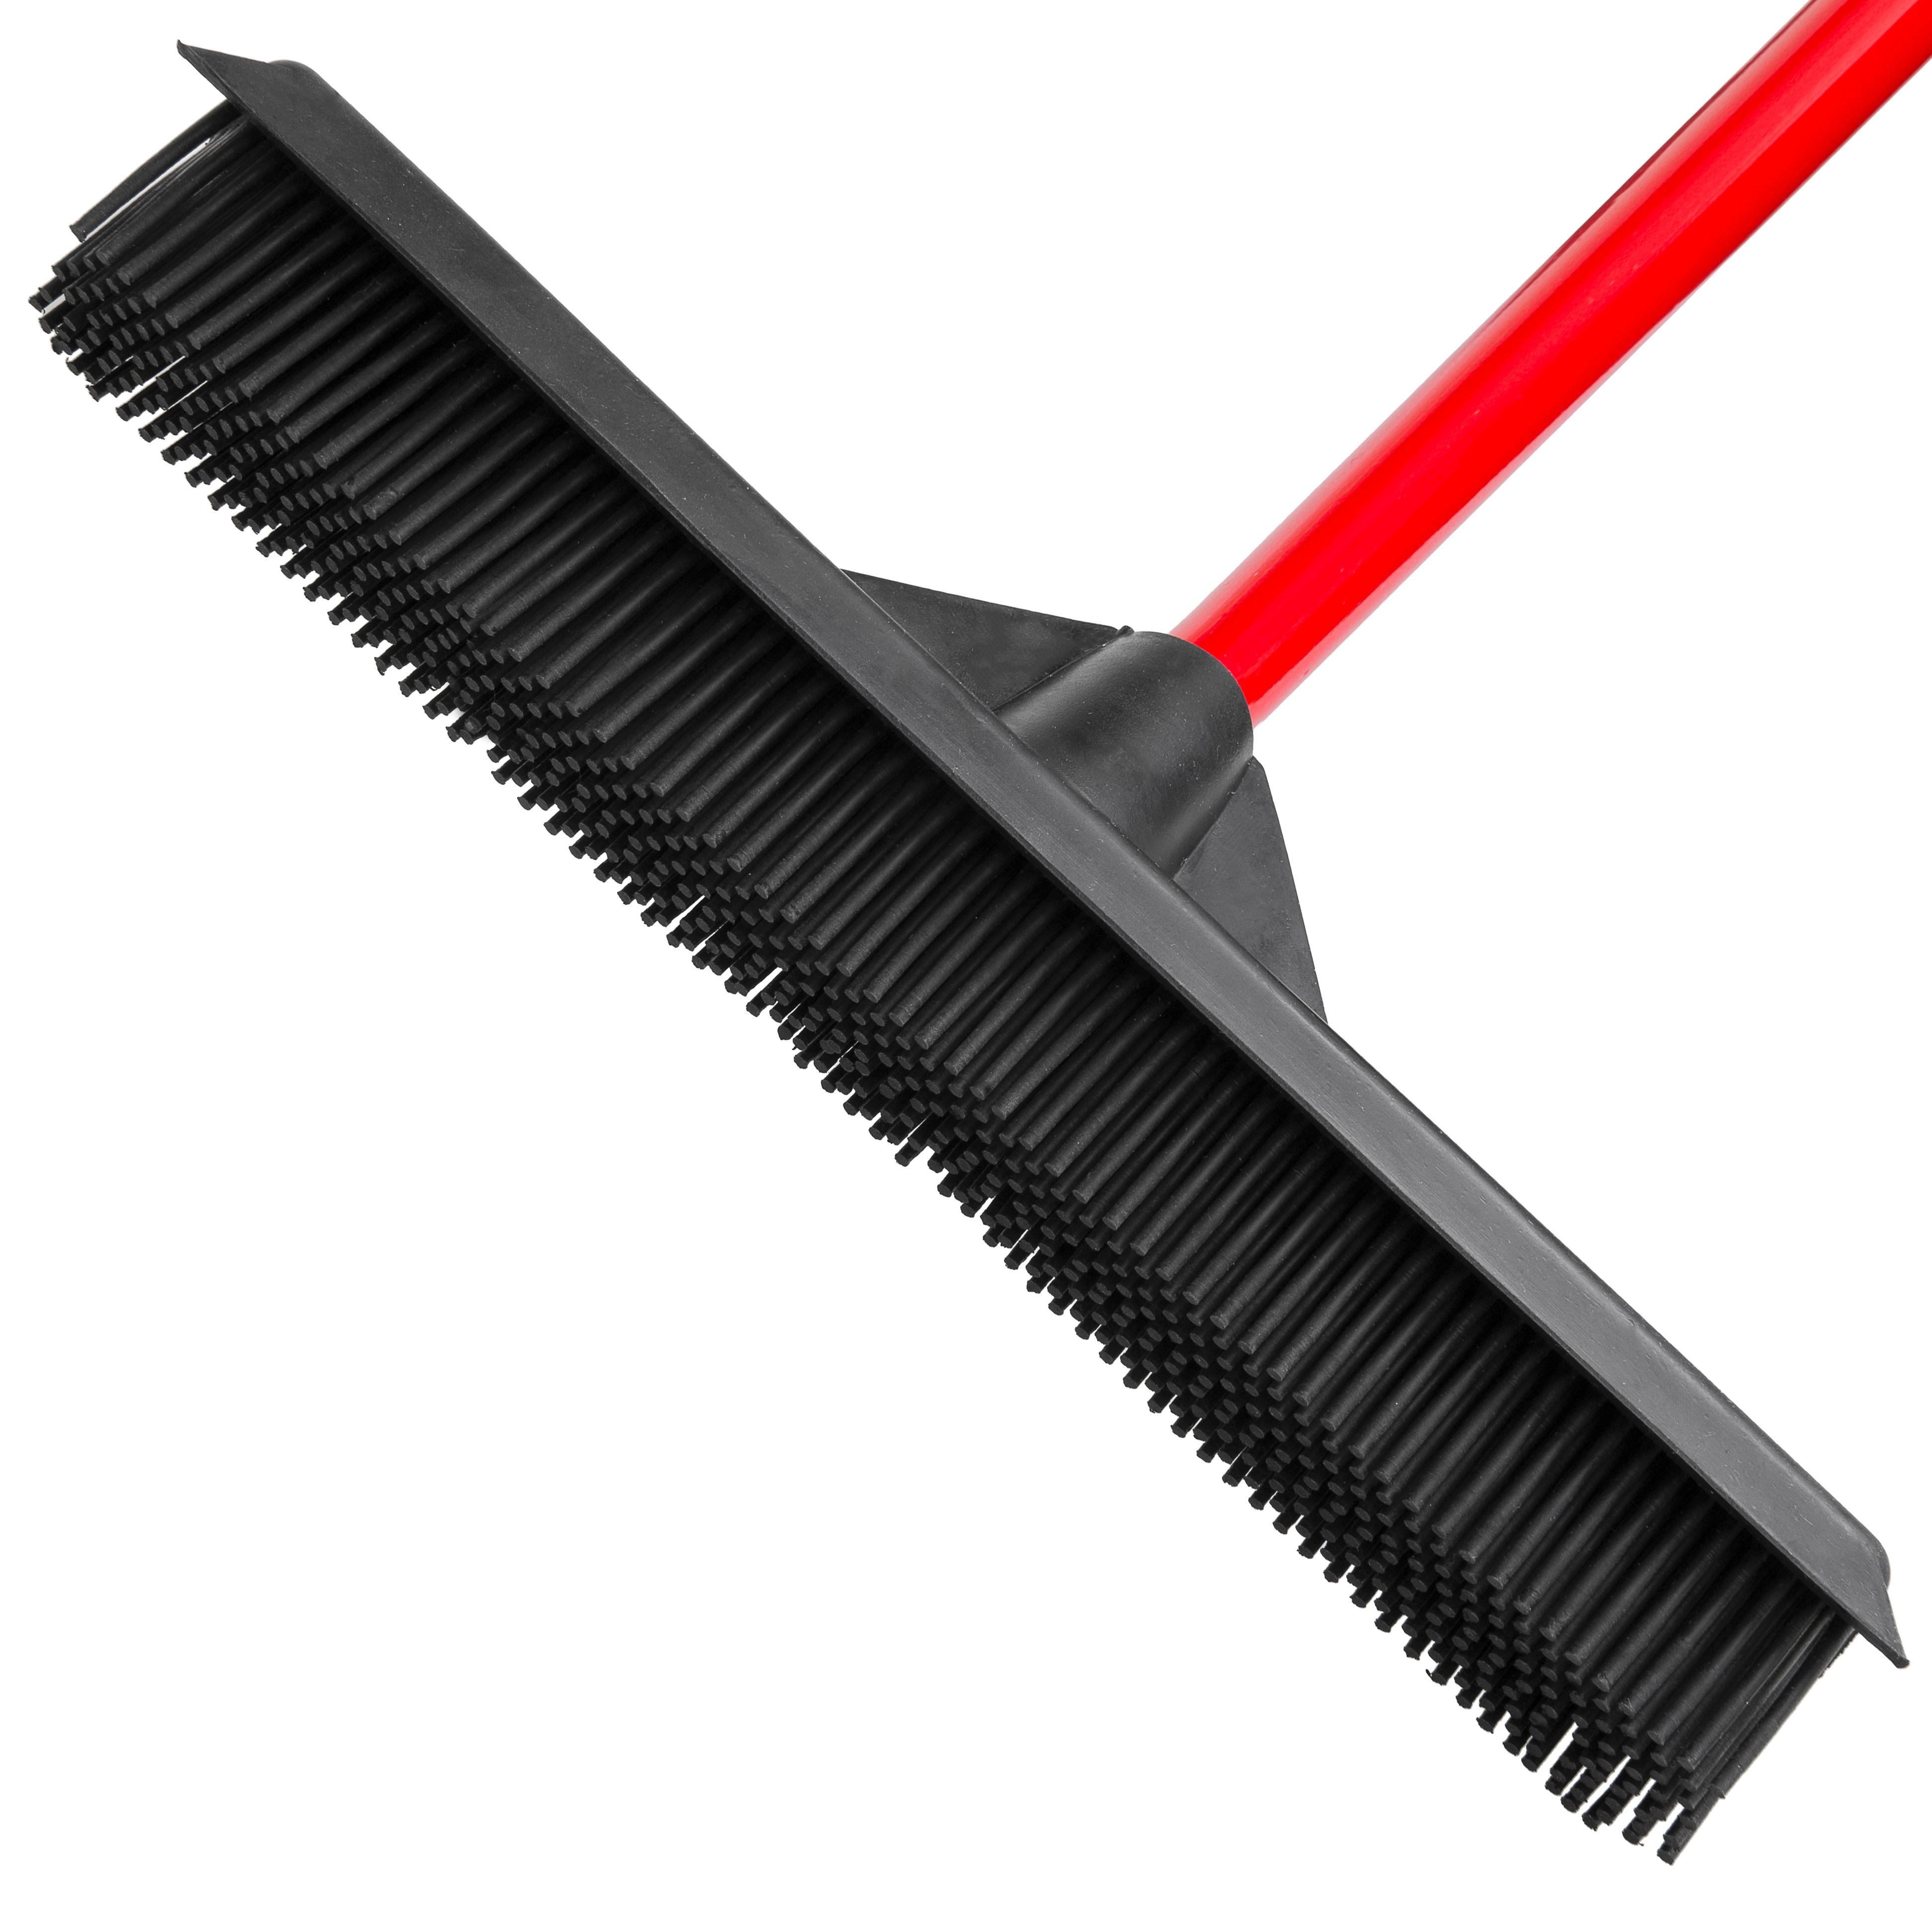 Amazon.com - RAVMAG Rubber Broom - Soft Natural Rubber Bristles with